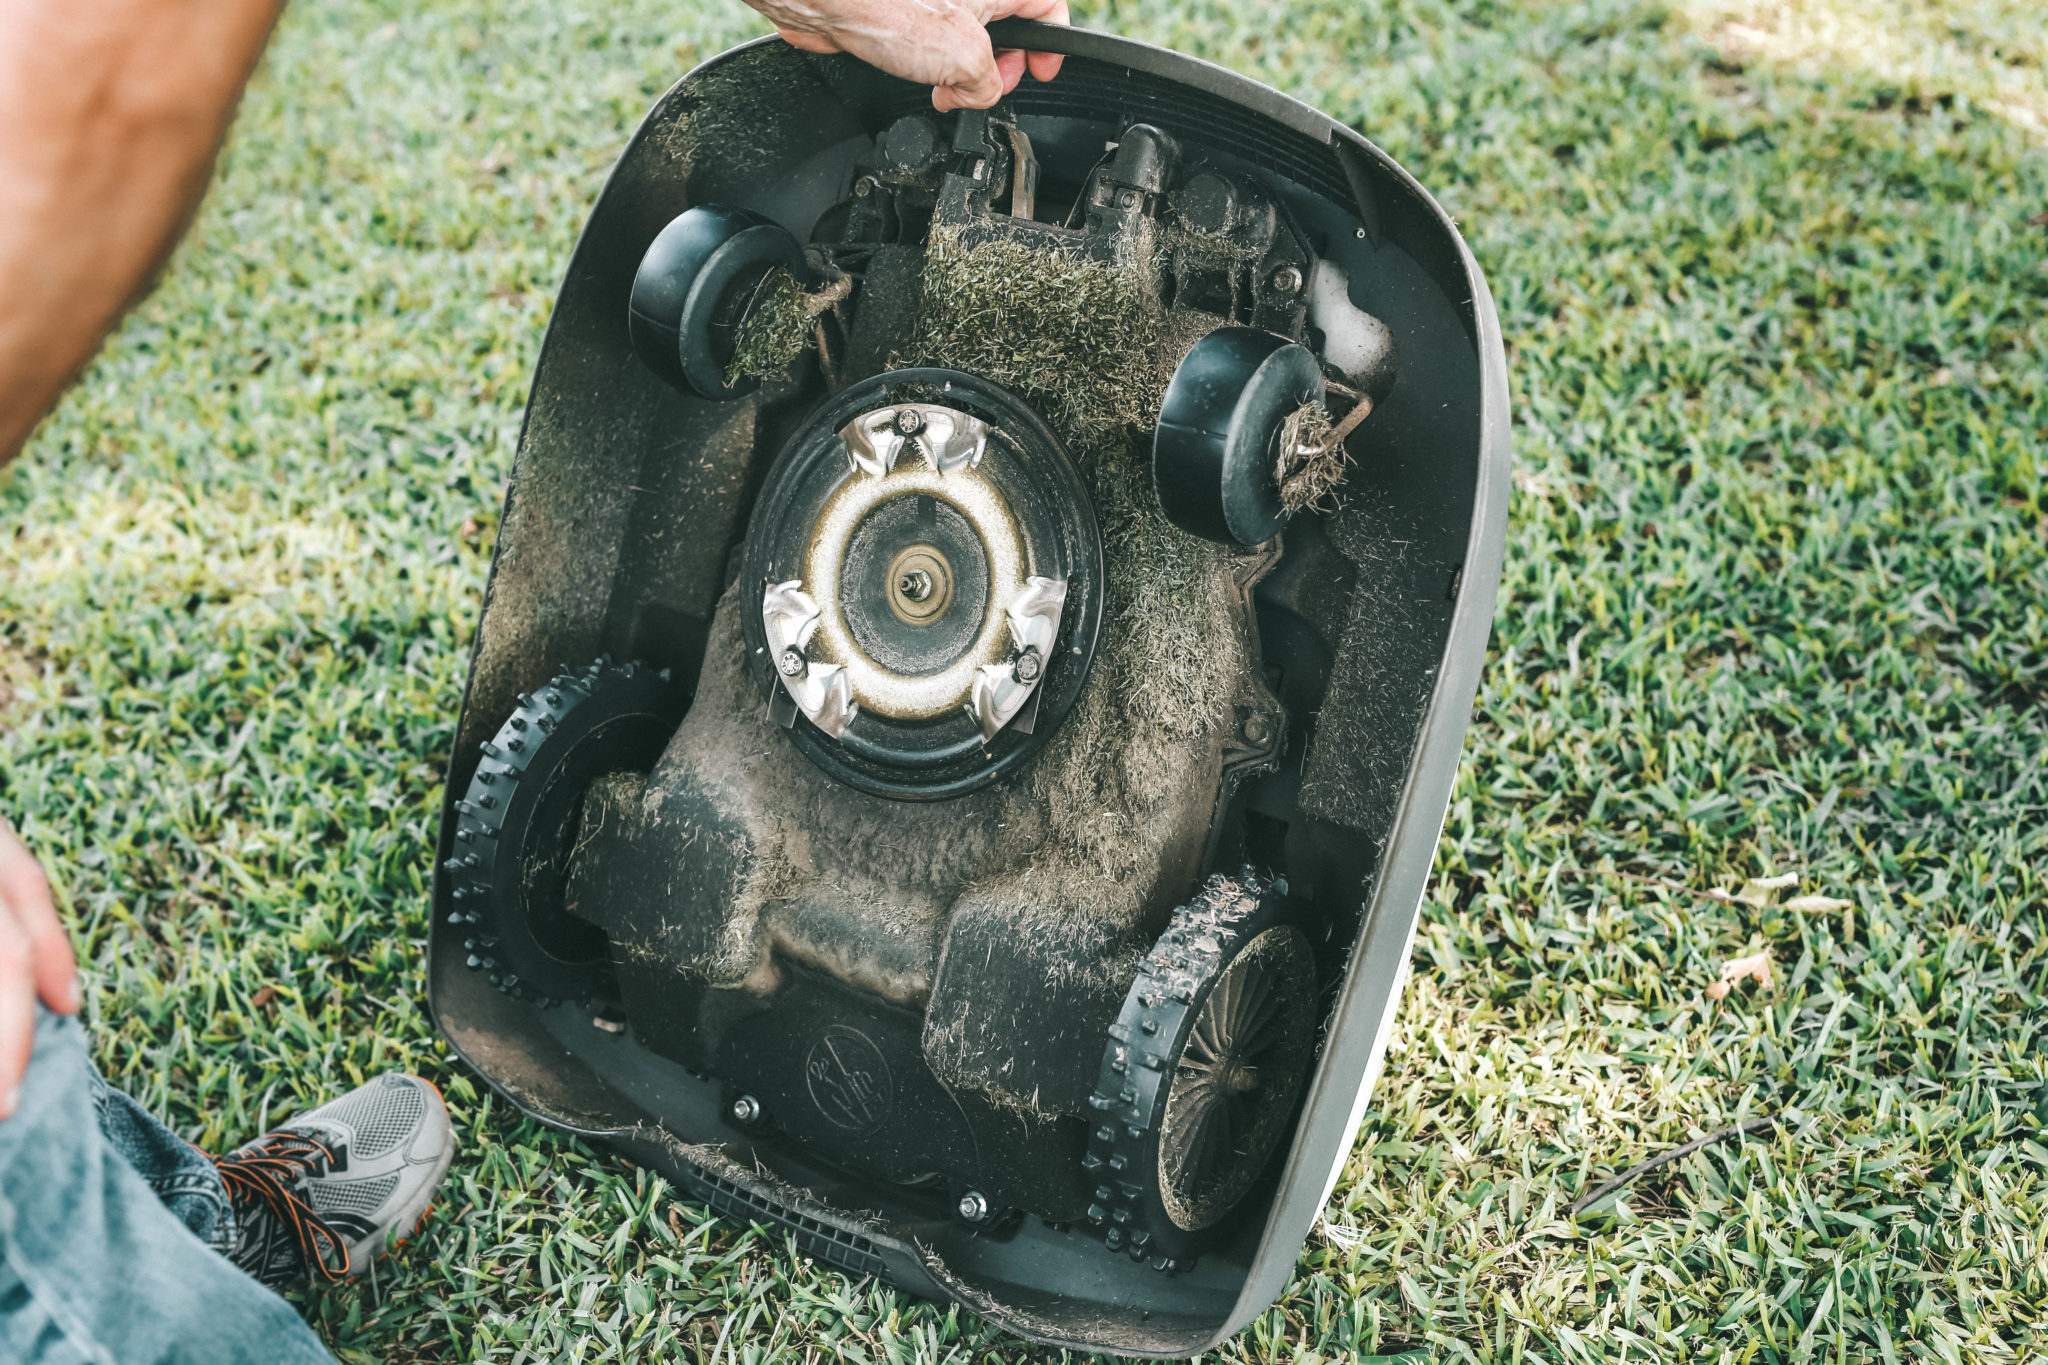 Honda Miimo Robotic Lawn Mower Review by popular Austin lifestyle blog, Dressed to Kill: image of the underside of a Honda Miimo Robotic Lawn Mower.